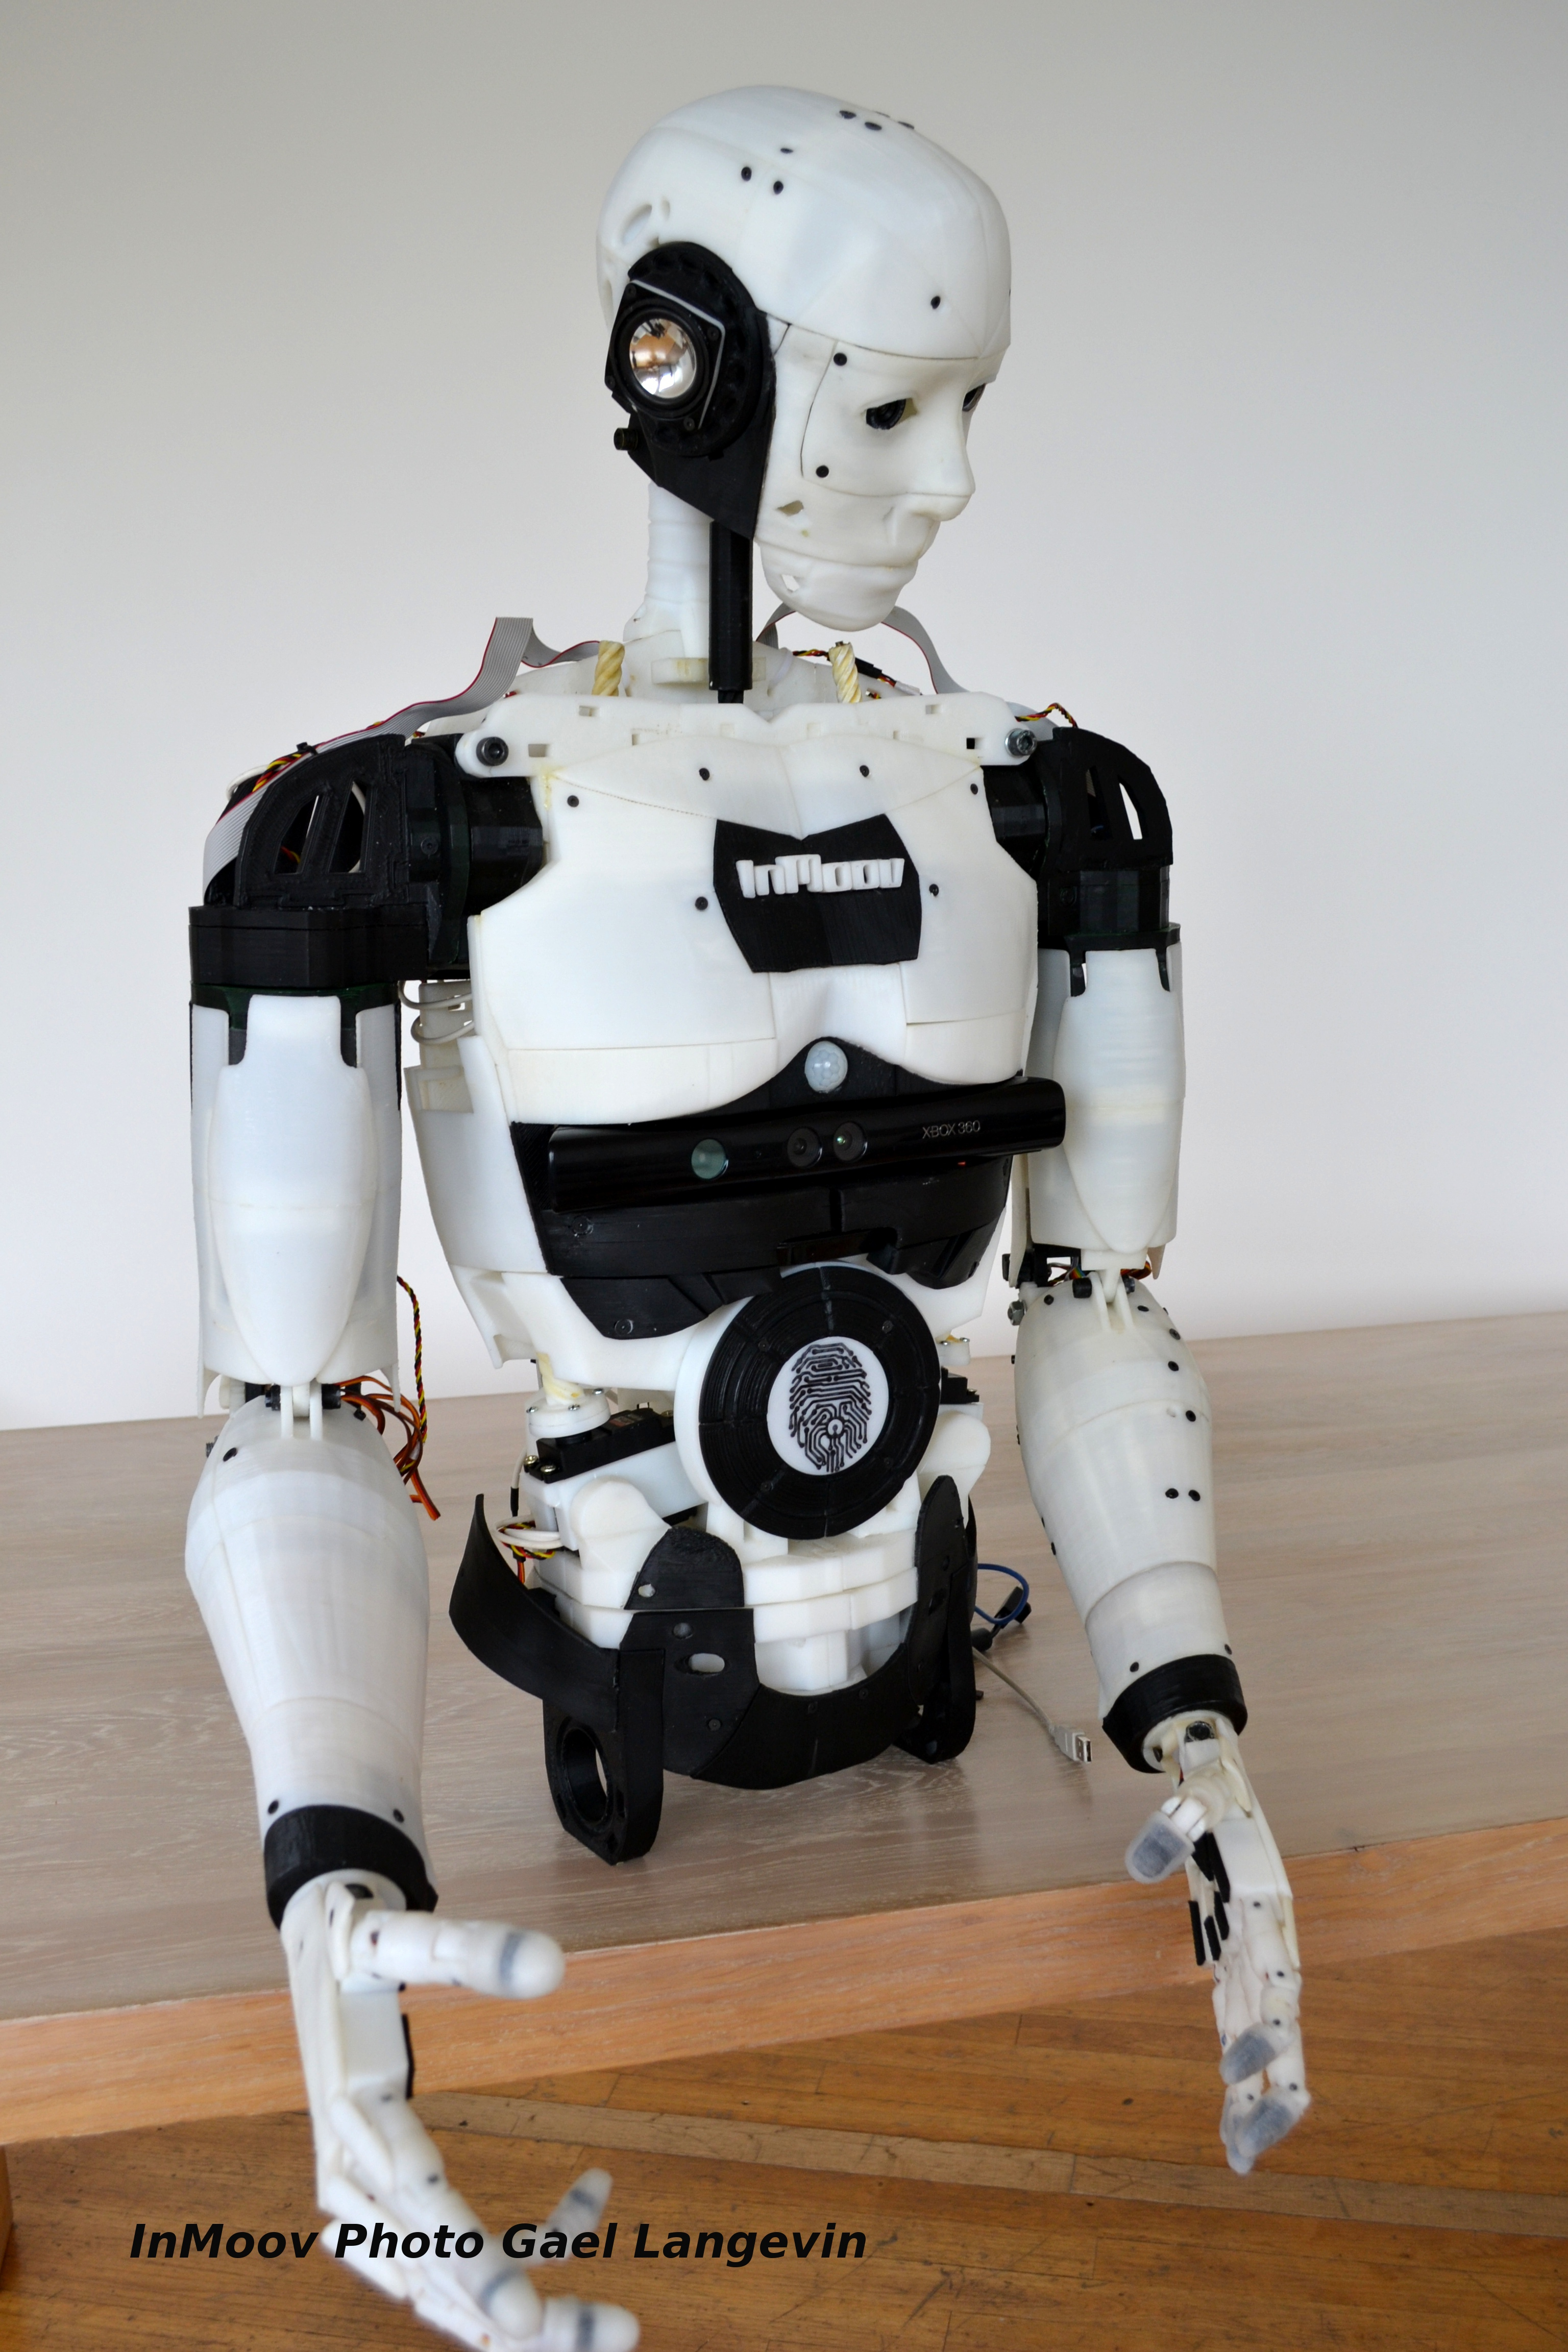 Inmoov at the bal of robot